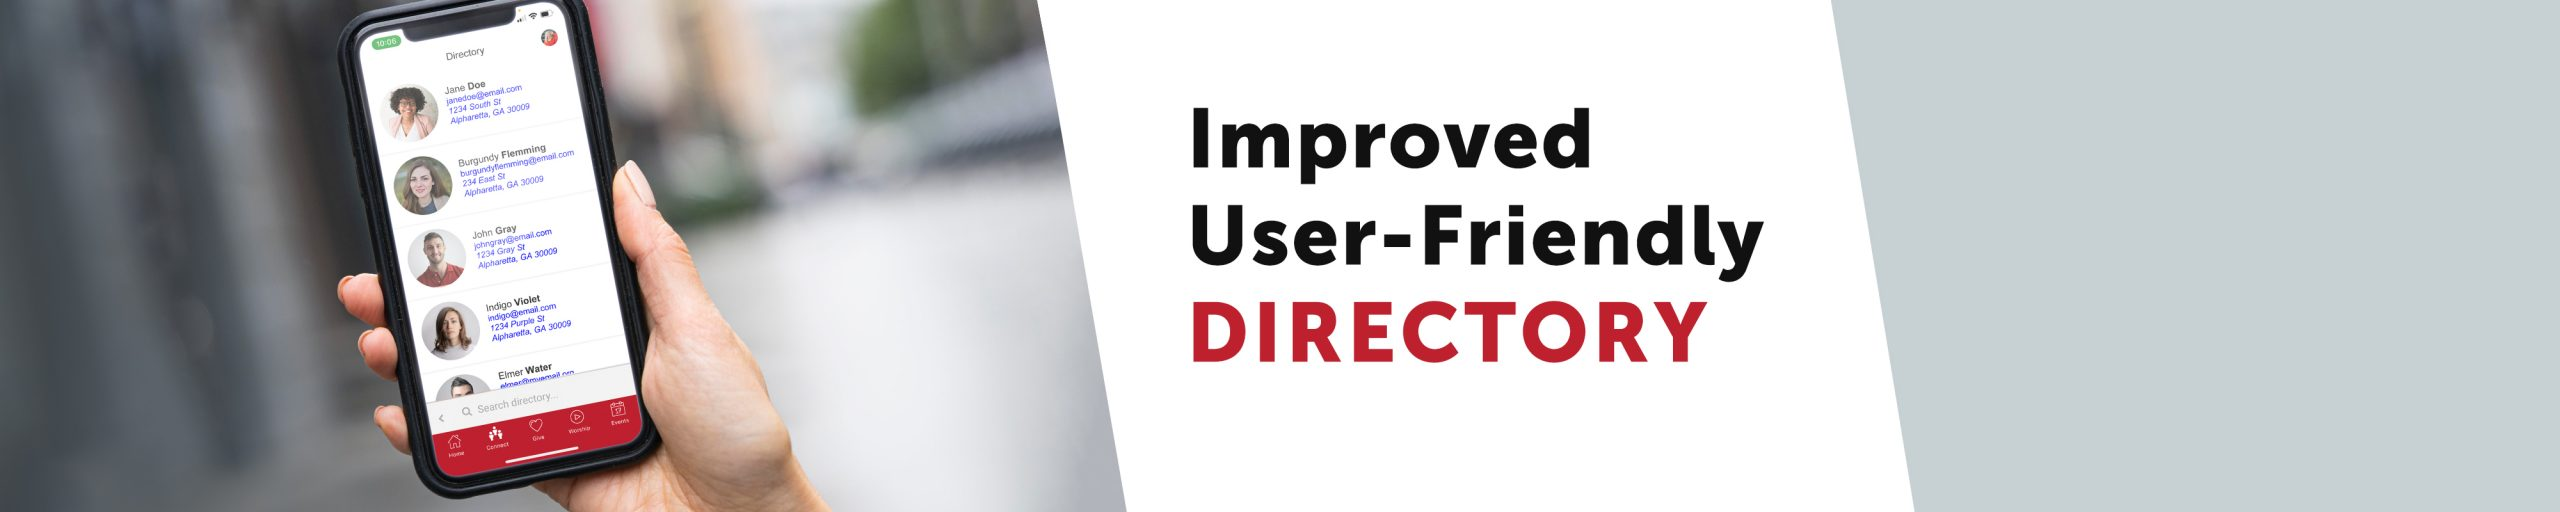 Try our app for an improved, user-friendly directory.